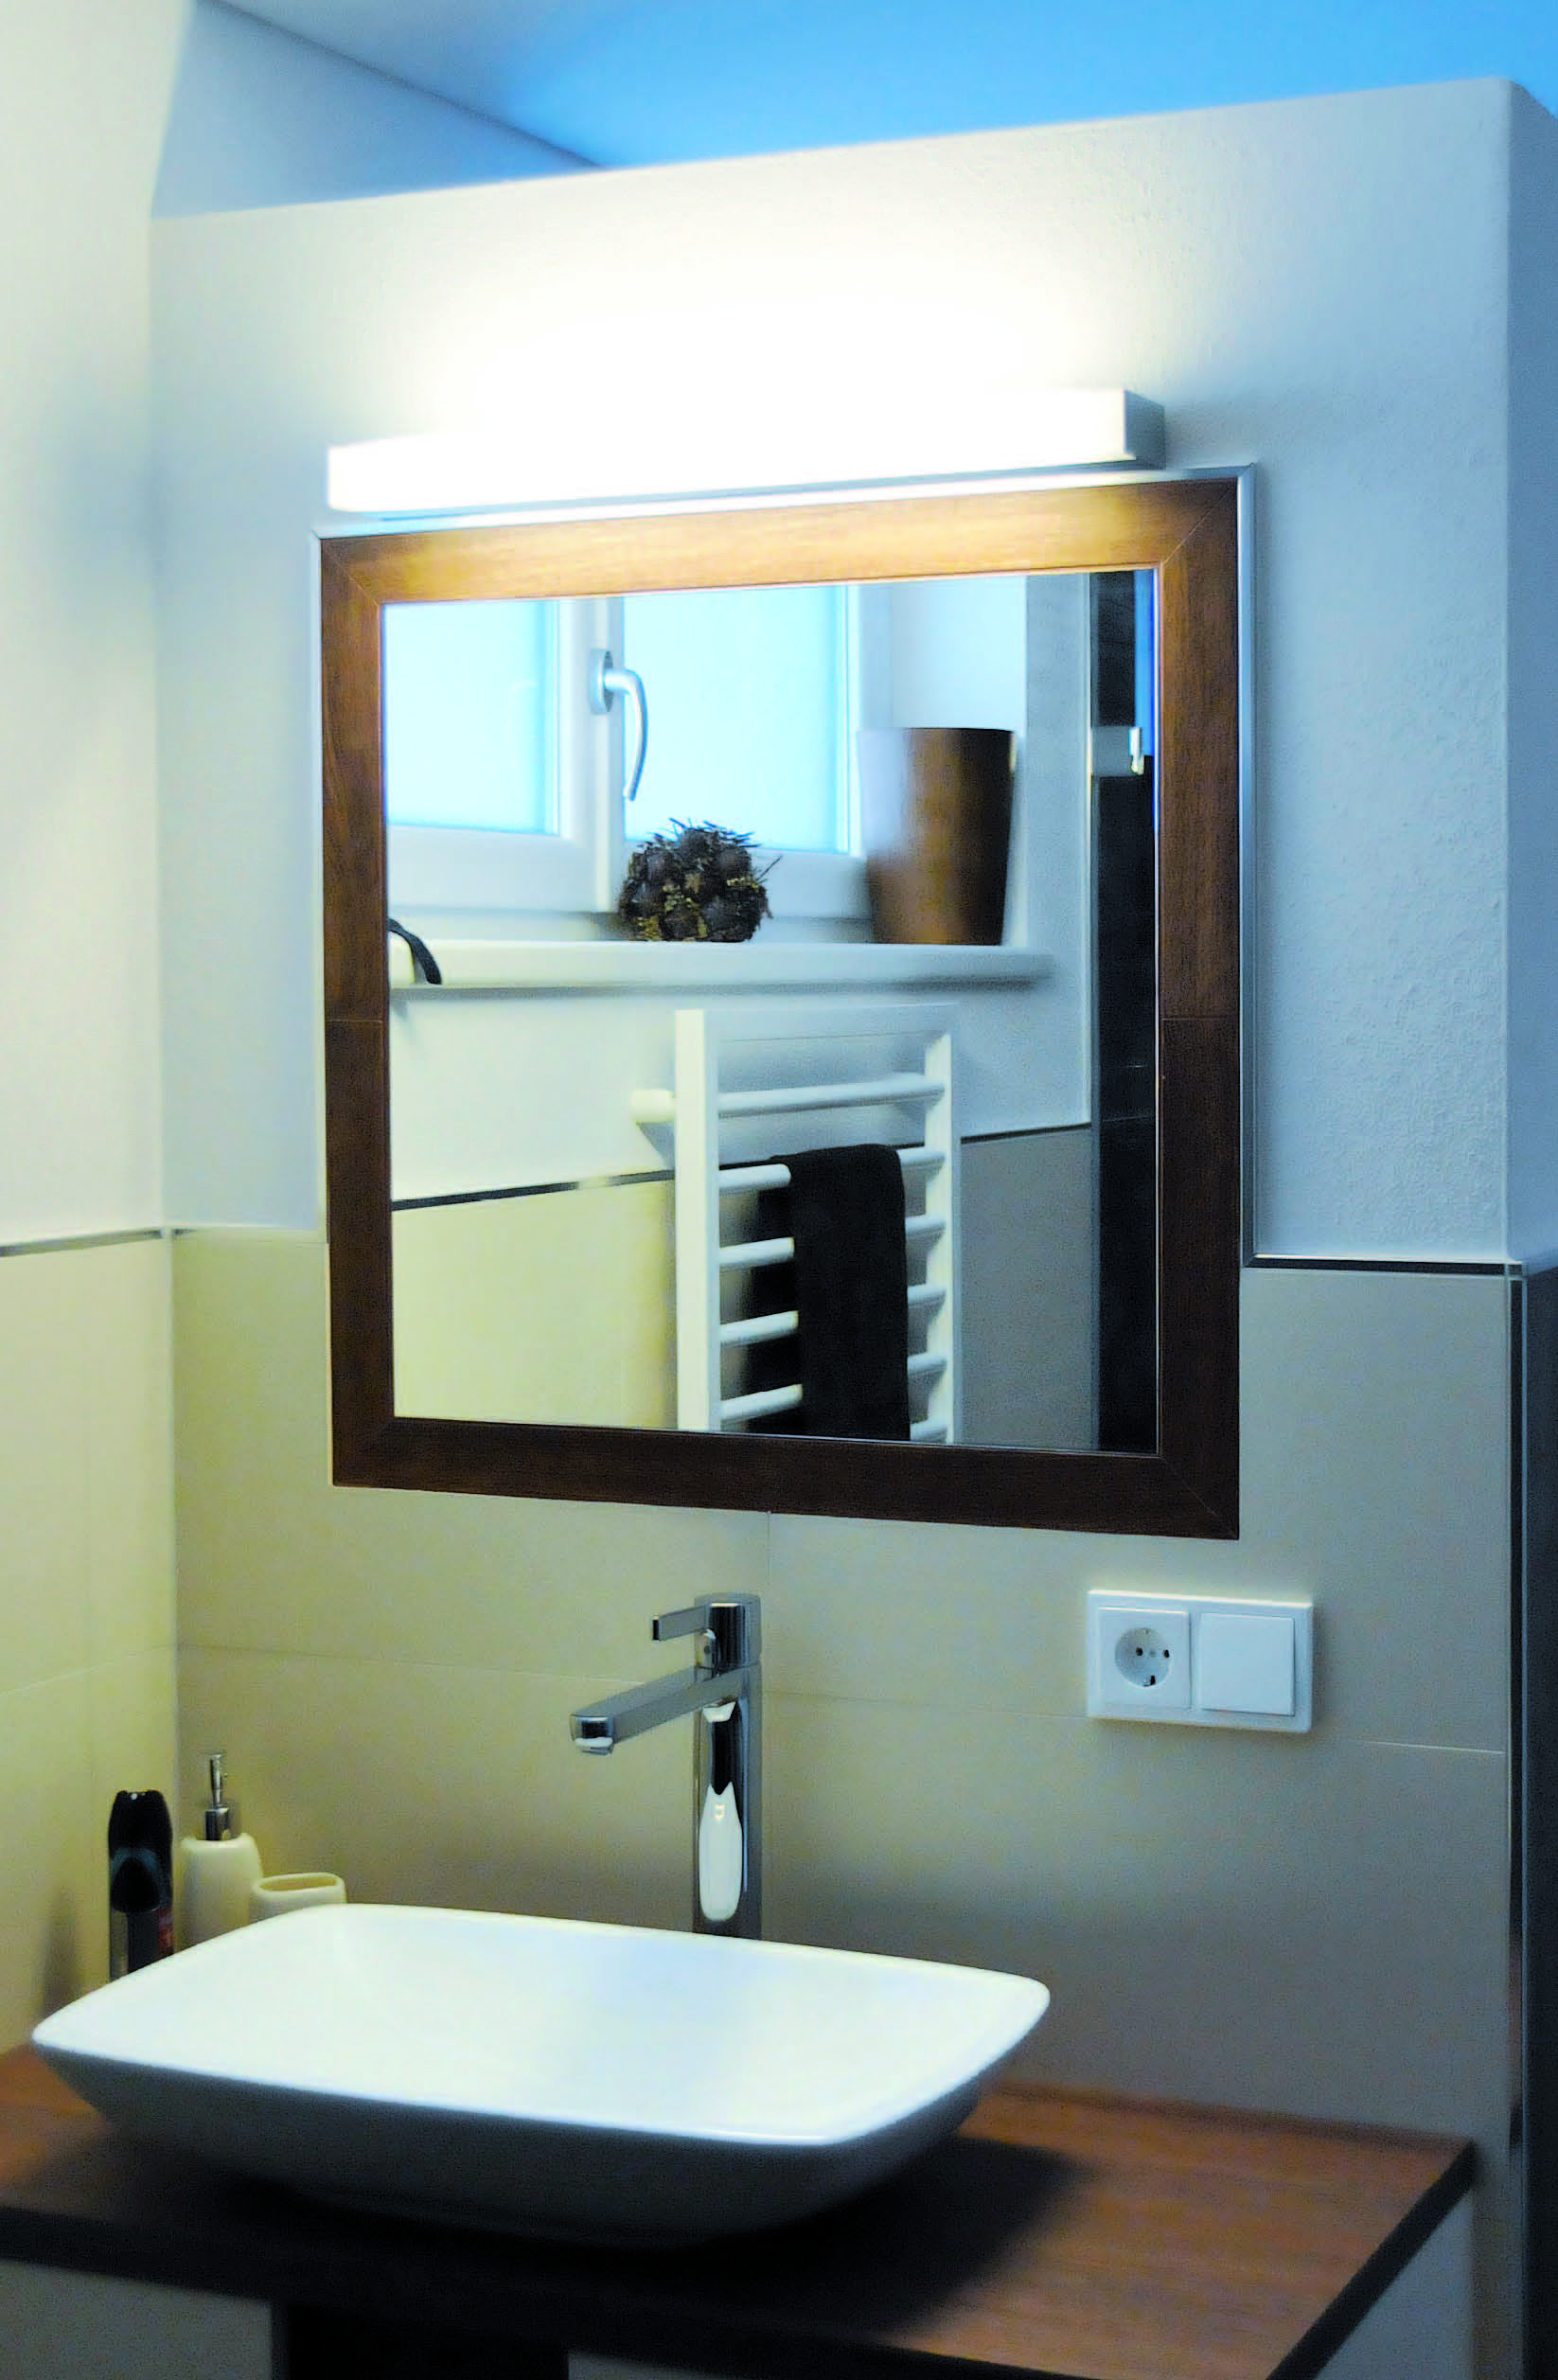 The new mirror led from orbit illuminations design and